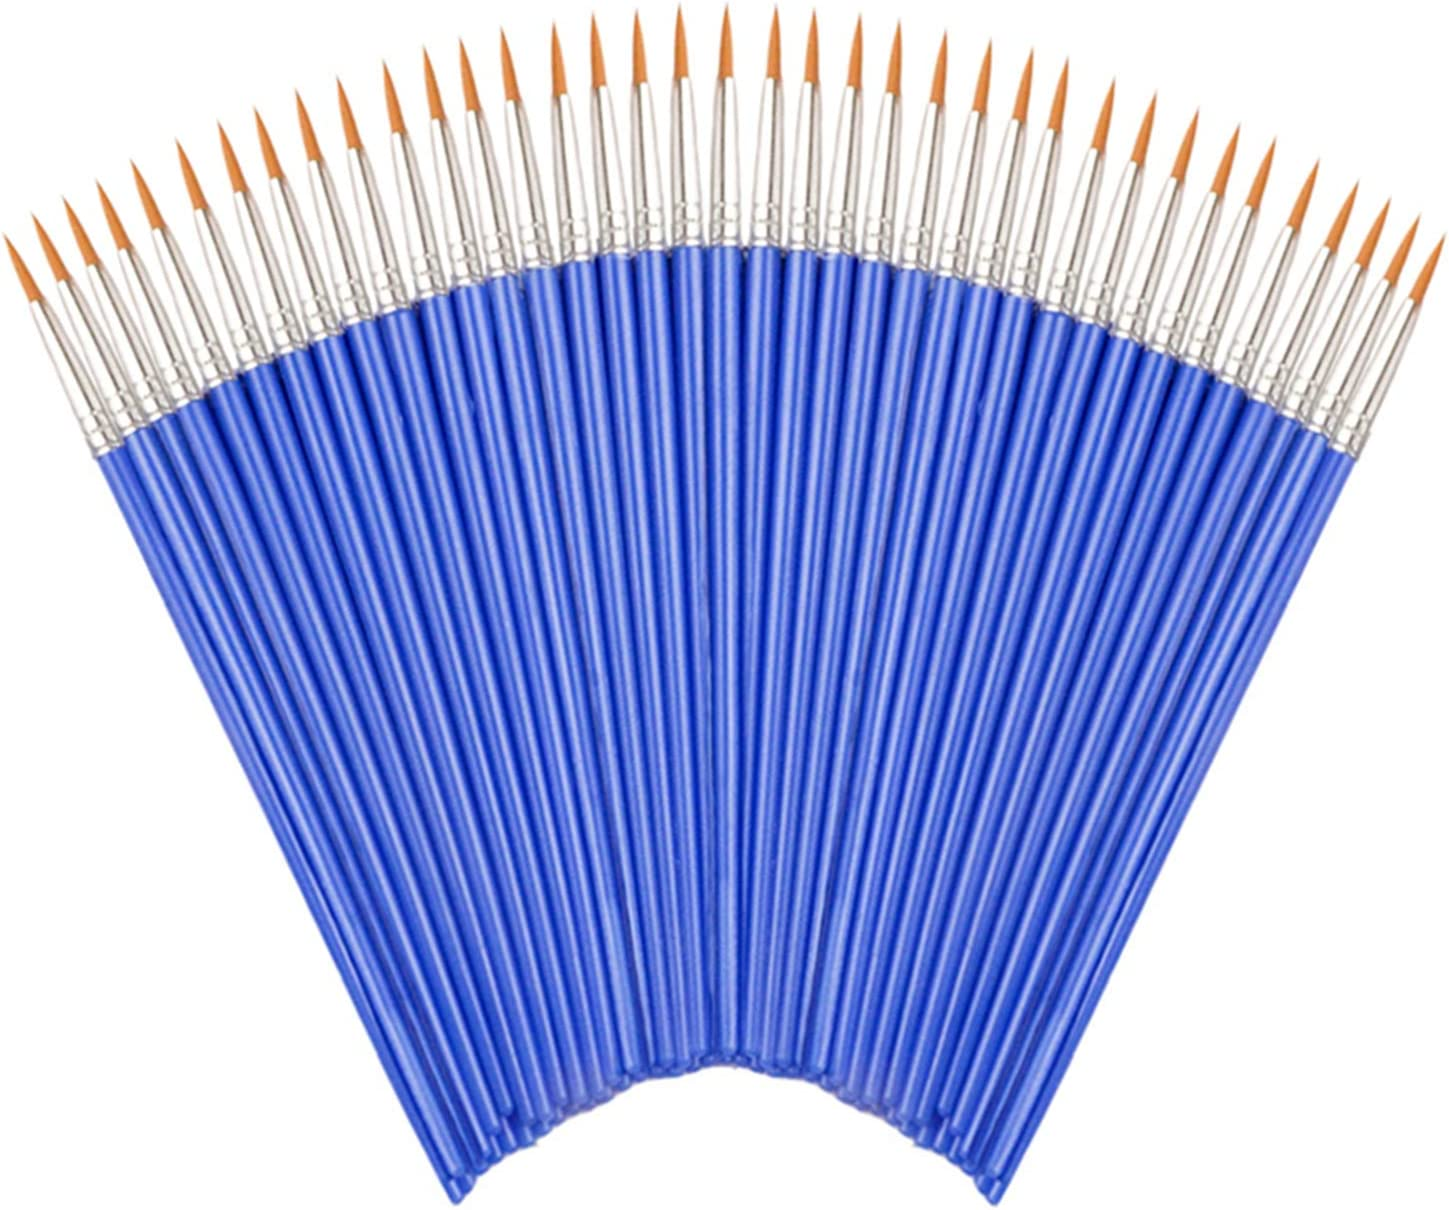 Round Paint Brushes,50 Pcs Art Paintbrushes for Kids/ Artists/Painters/Beginners/Students ,Short Plastic Handle,Nylon Hair Brushes for Acrylic Oil Watercolor Art Painting